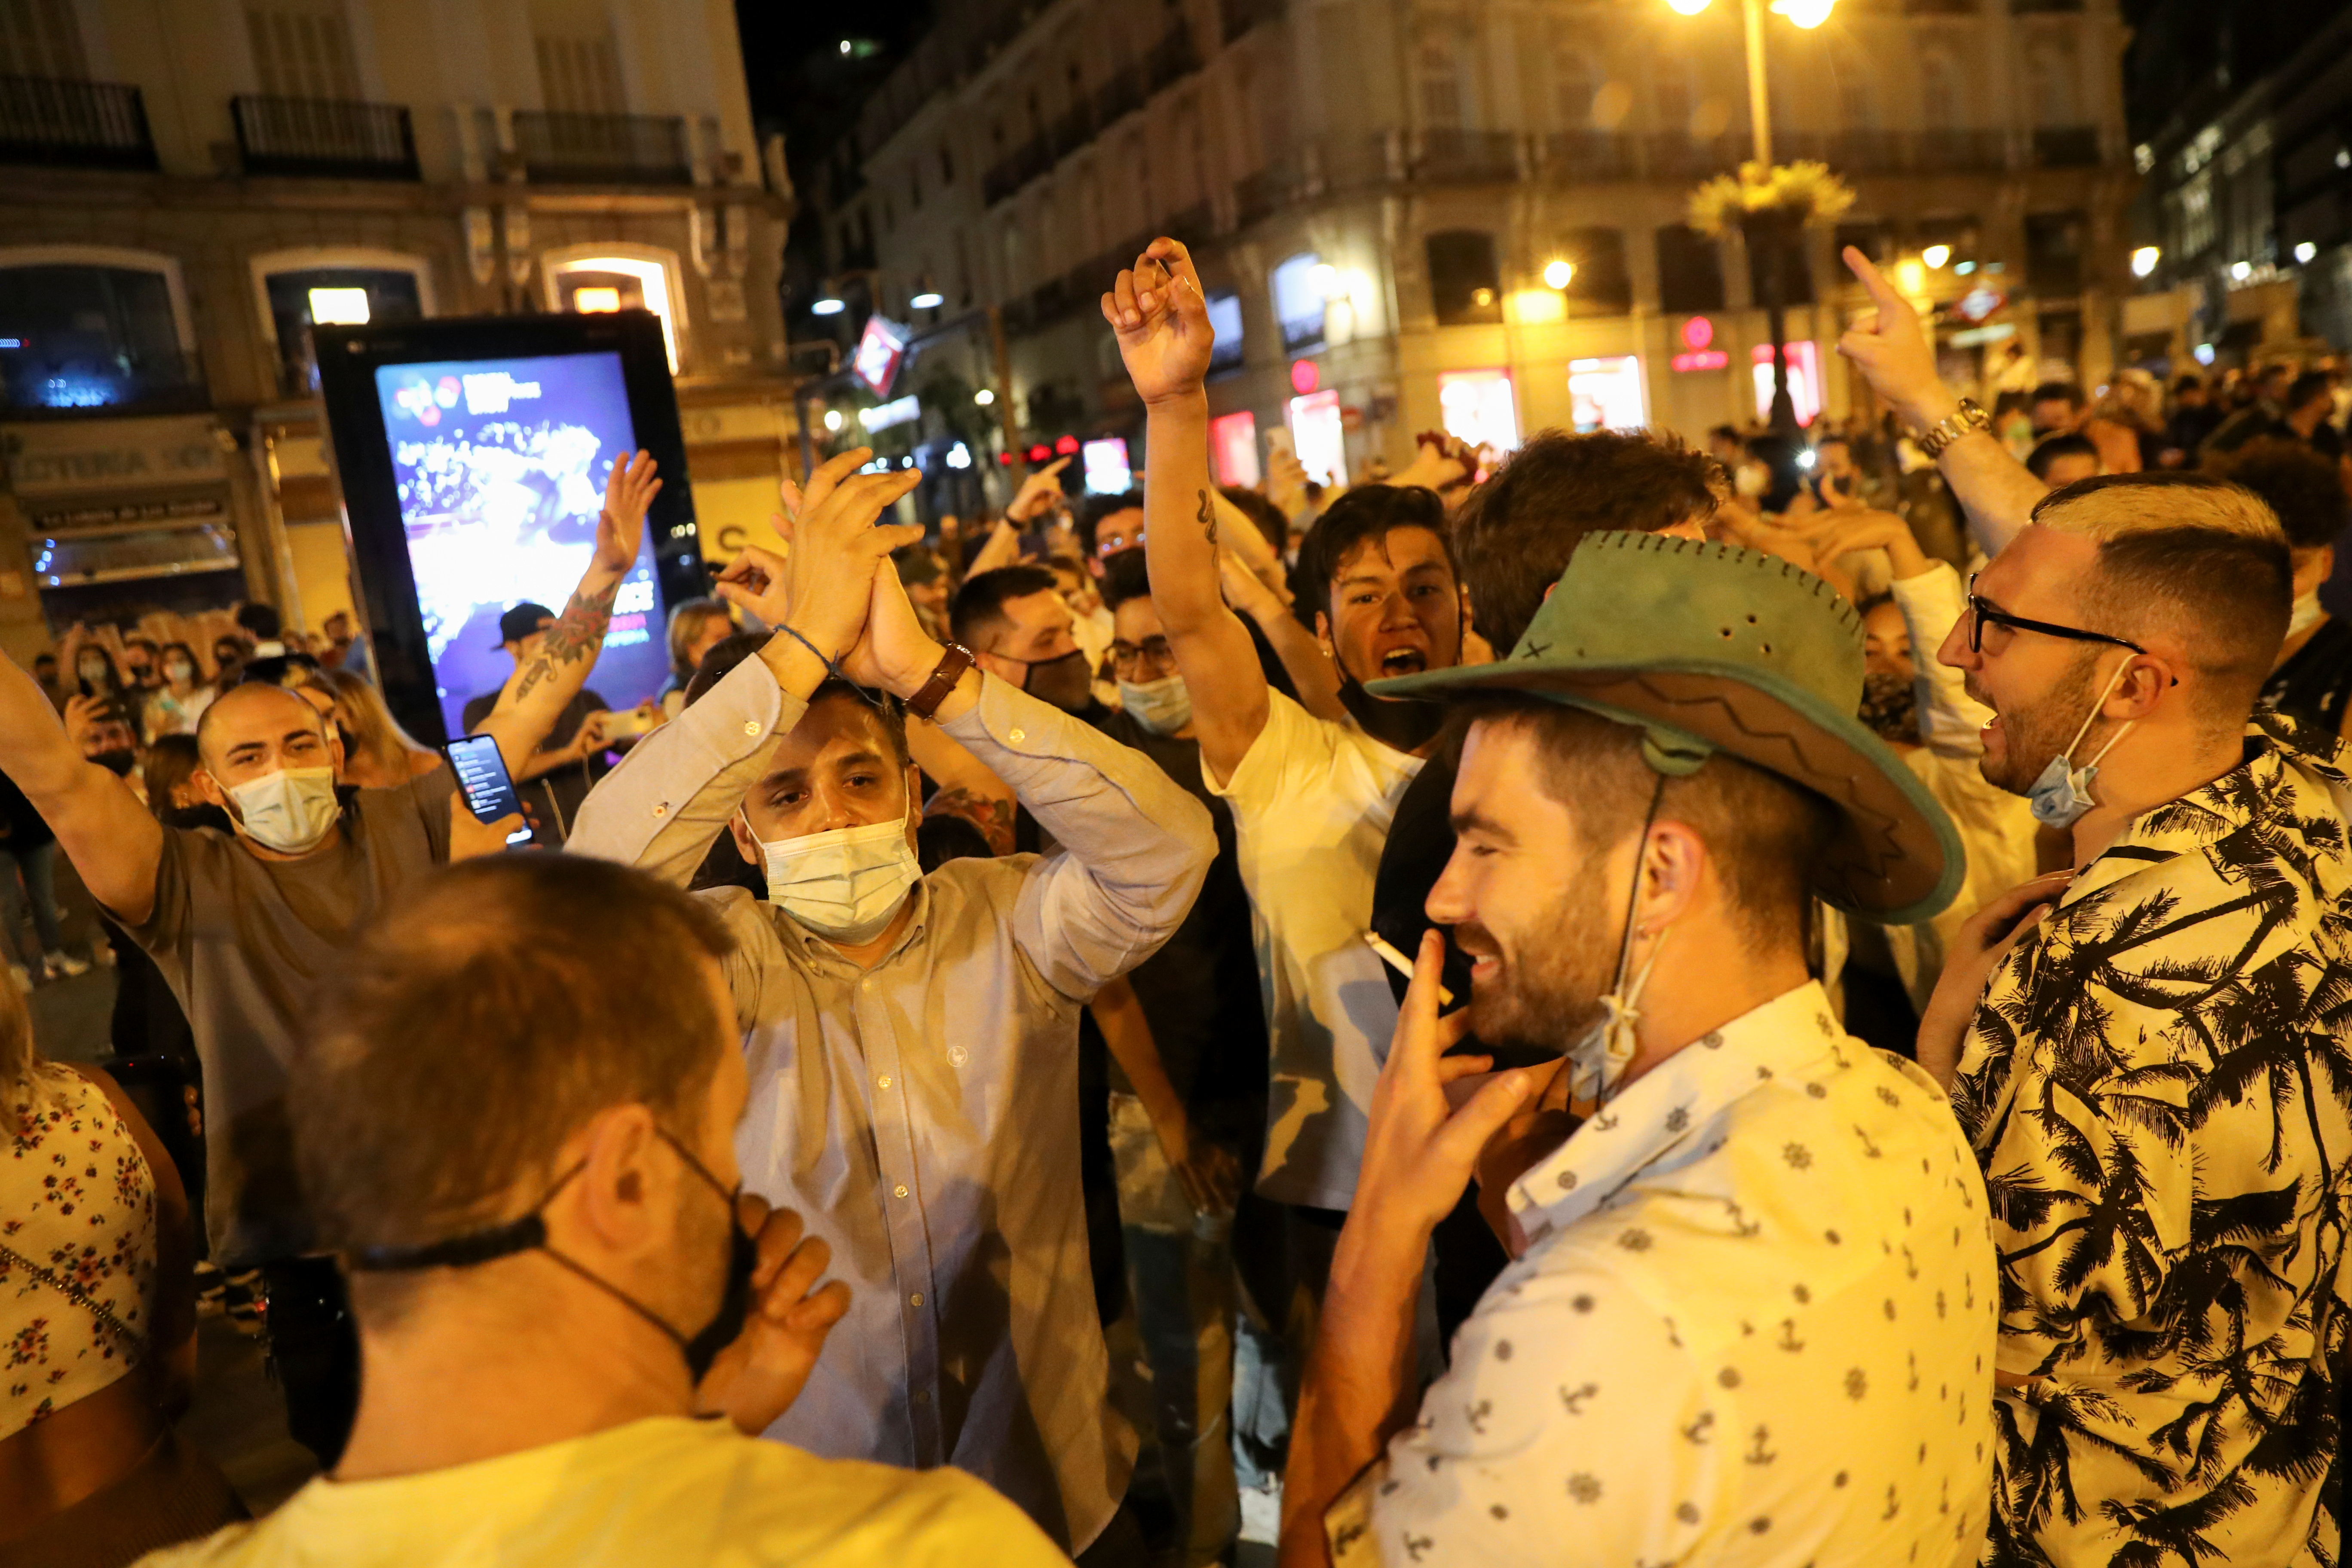 People celebrate as the state of emergency decreed by the Spanish Government to prevent the spread of the coronavirus disease (COVID-19) gets lifted at Puerta del Sol square in Madrid, Spain, May 9, 2021. REUTERS/Susana Vera